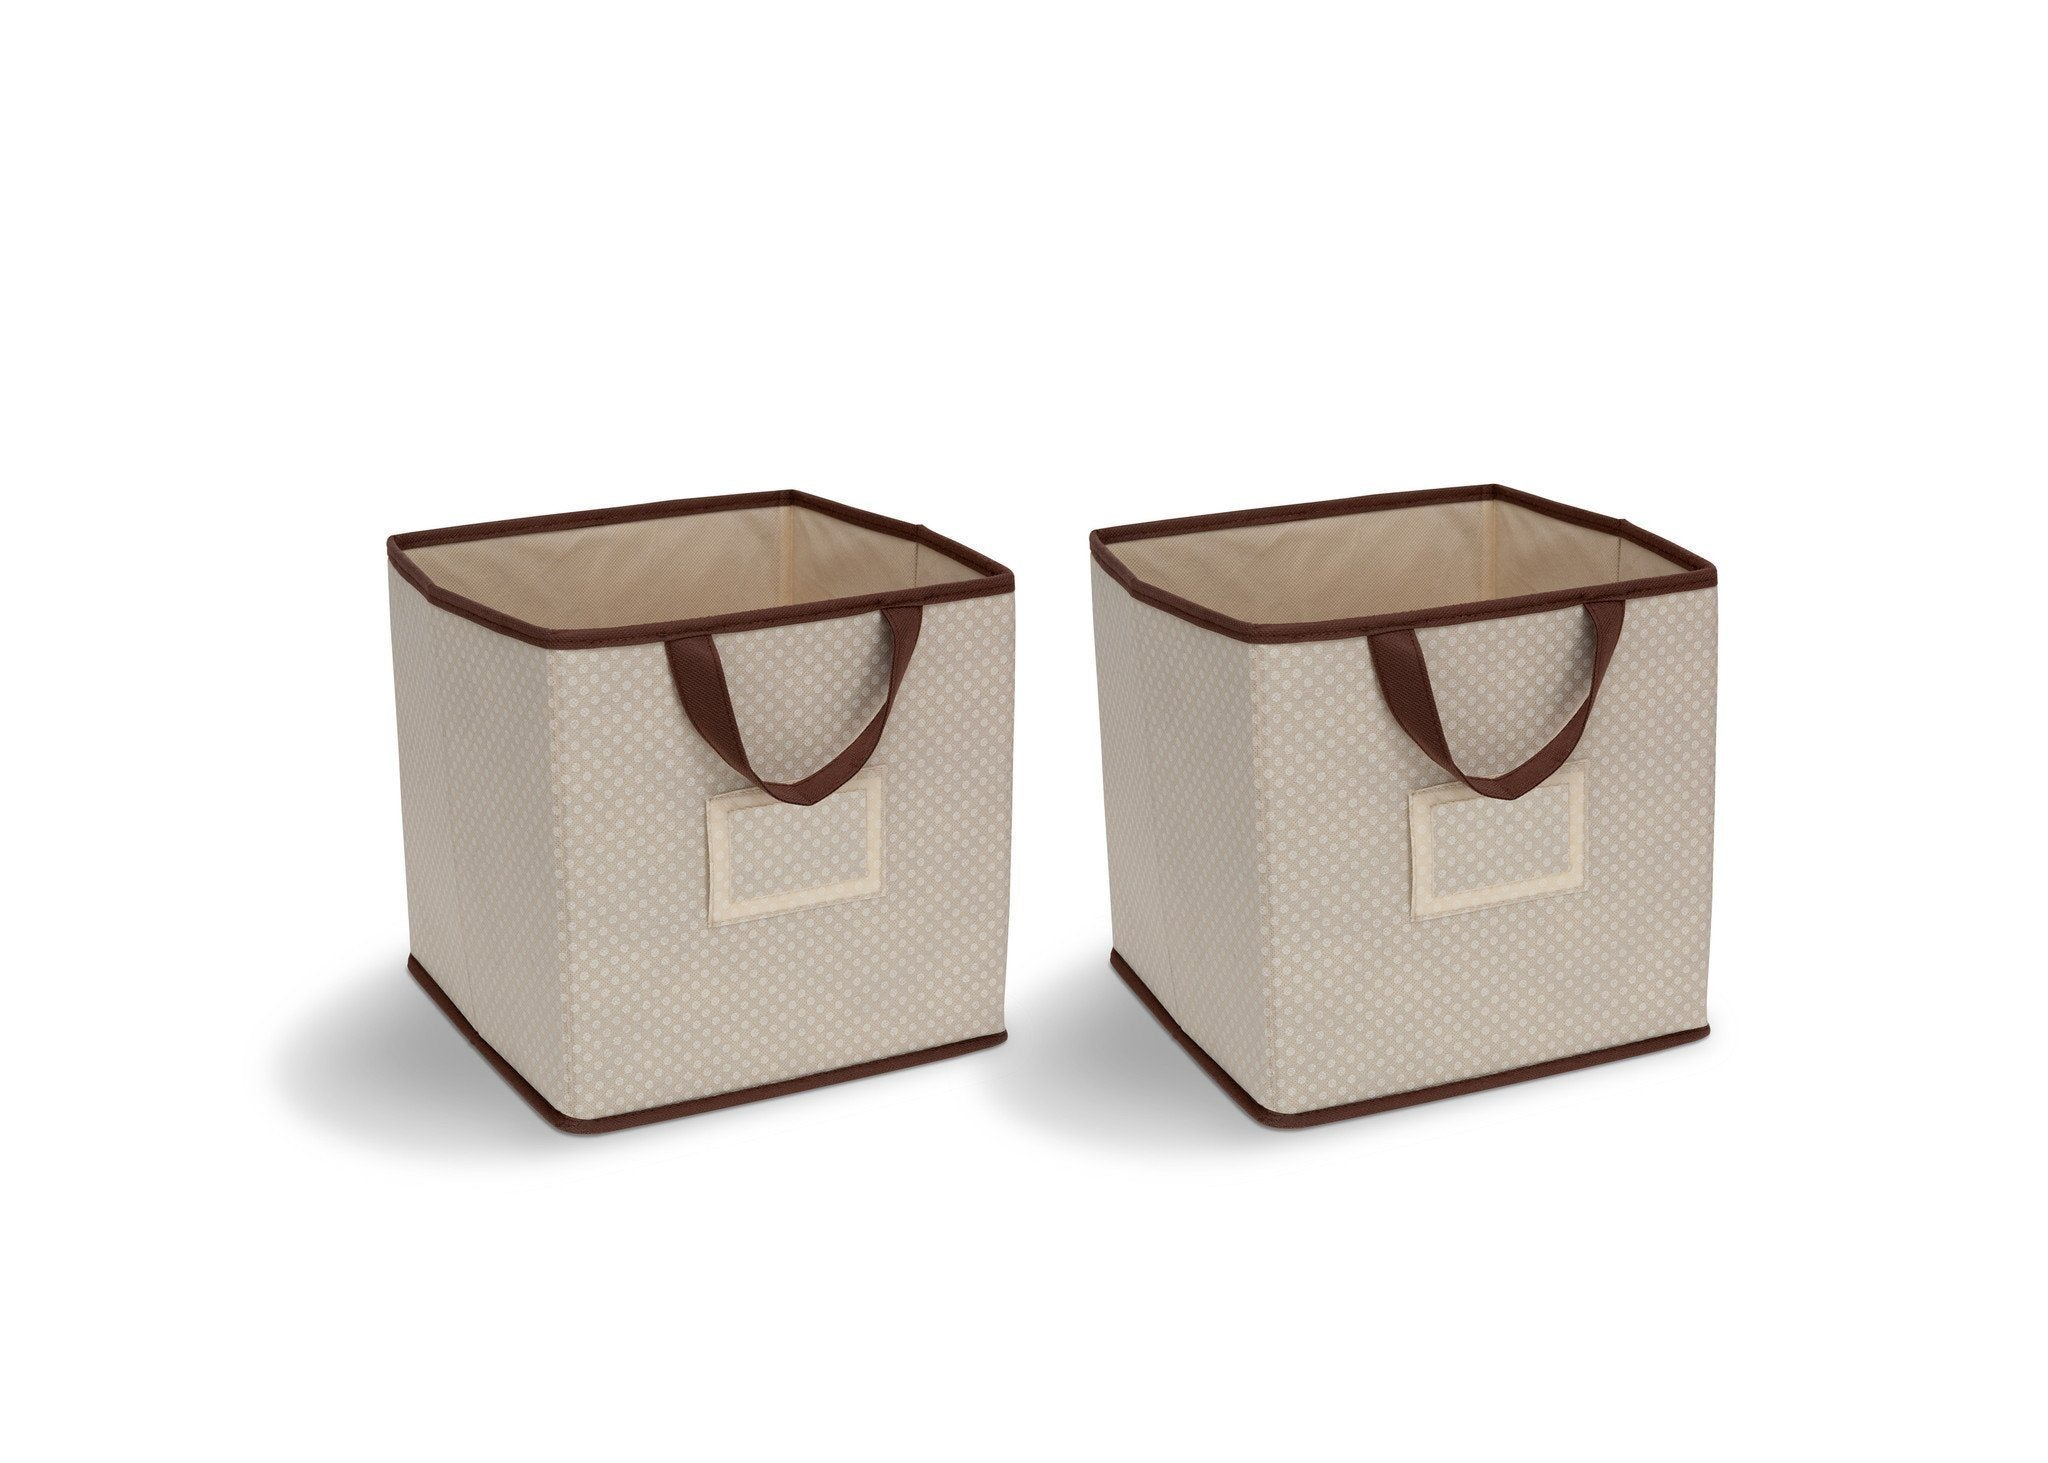 Delta Children Beige (250) 2-Piece Storage Cube Set (SS2155) c1c